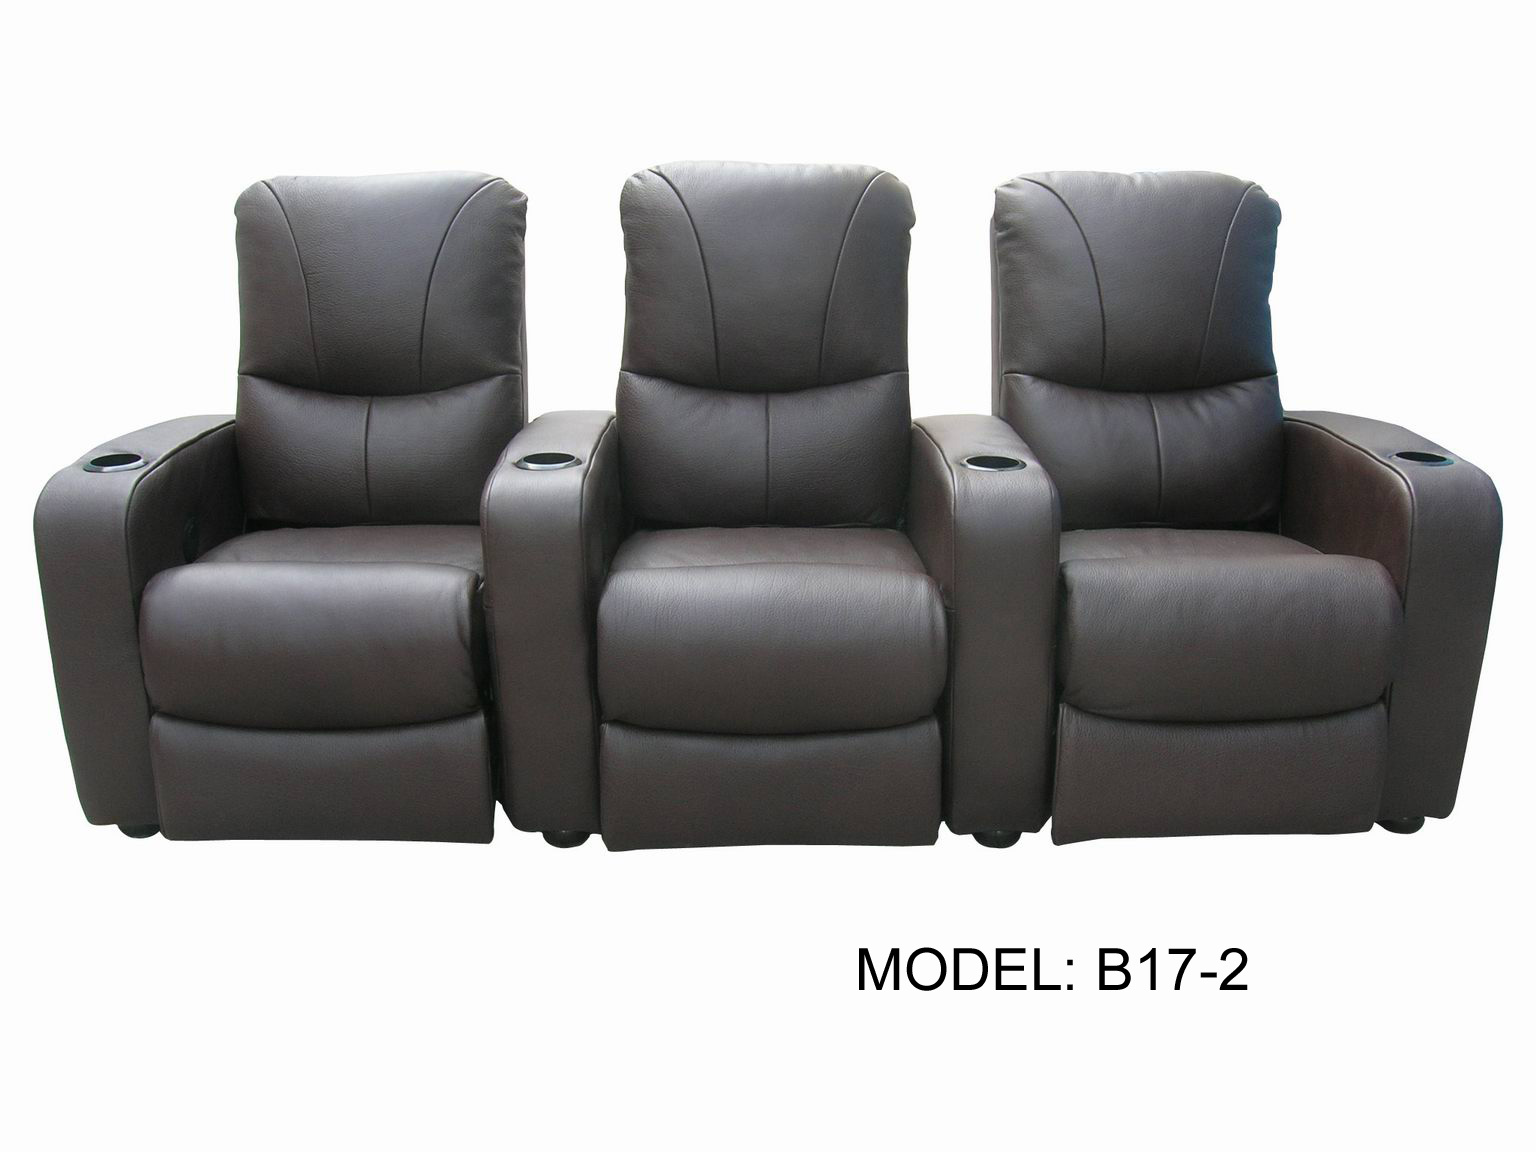 China home theater seating b17 2 china home theater seating leather sofa Loveseat theater seating